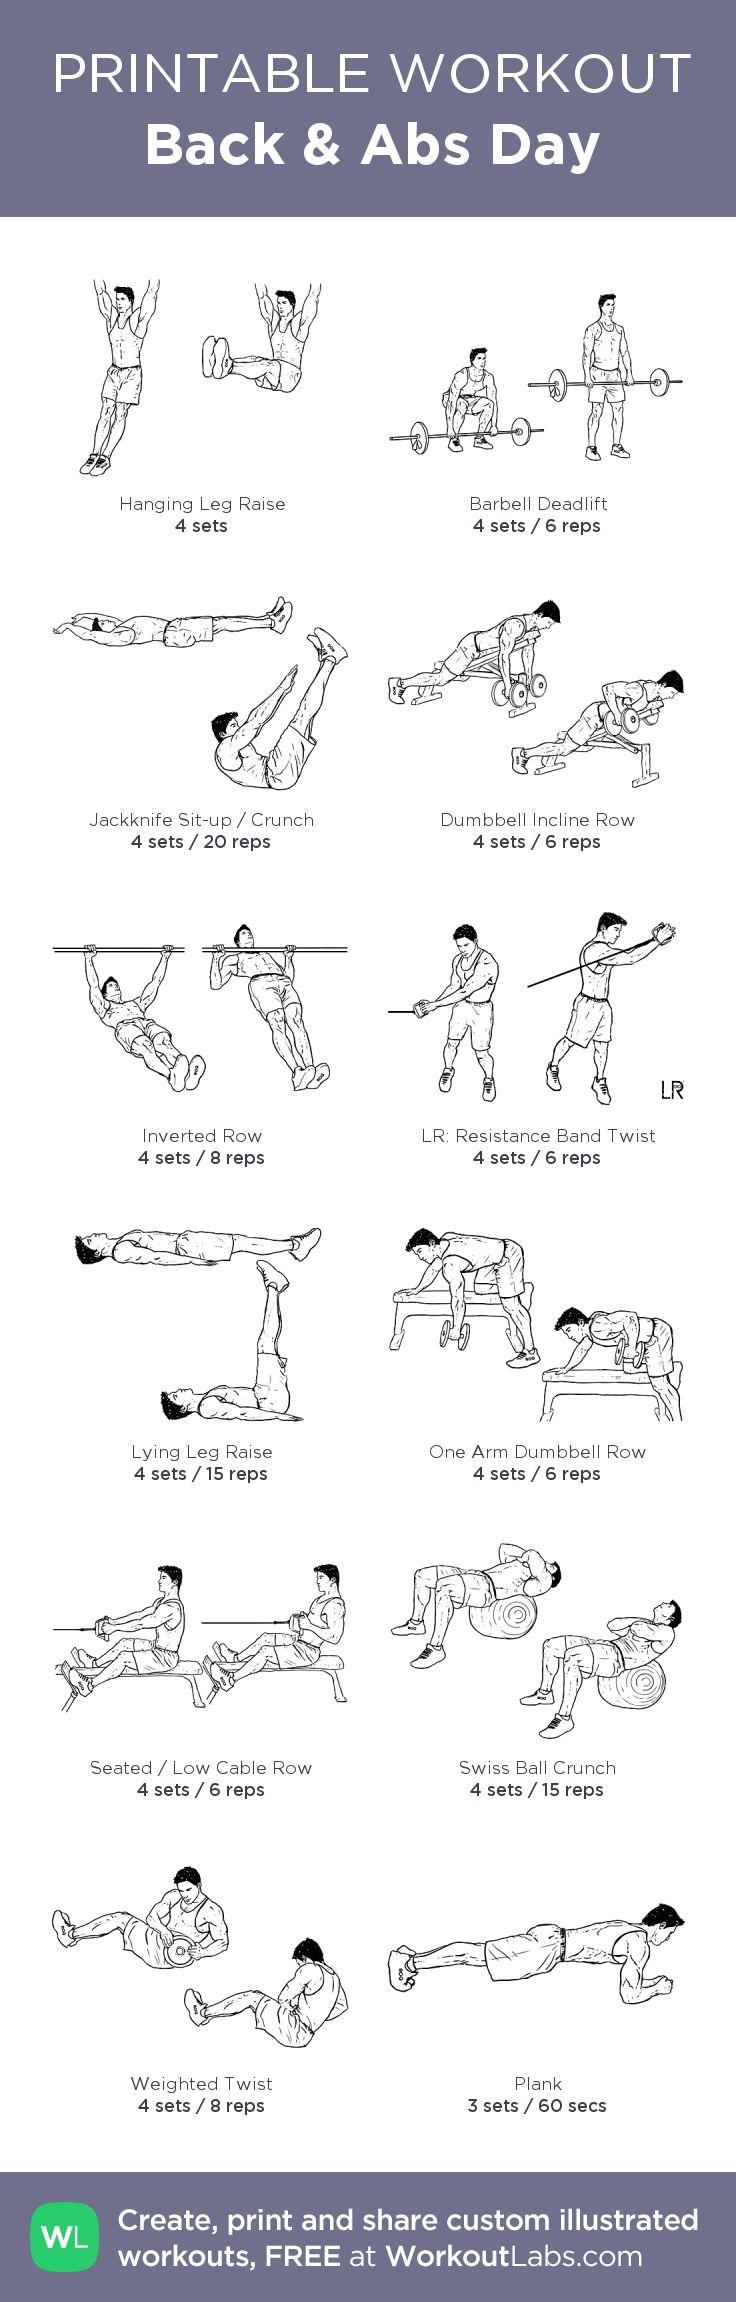 image relating to Printable Workouts named Cost-free Printable Exercises Customized Plan Builder